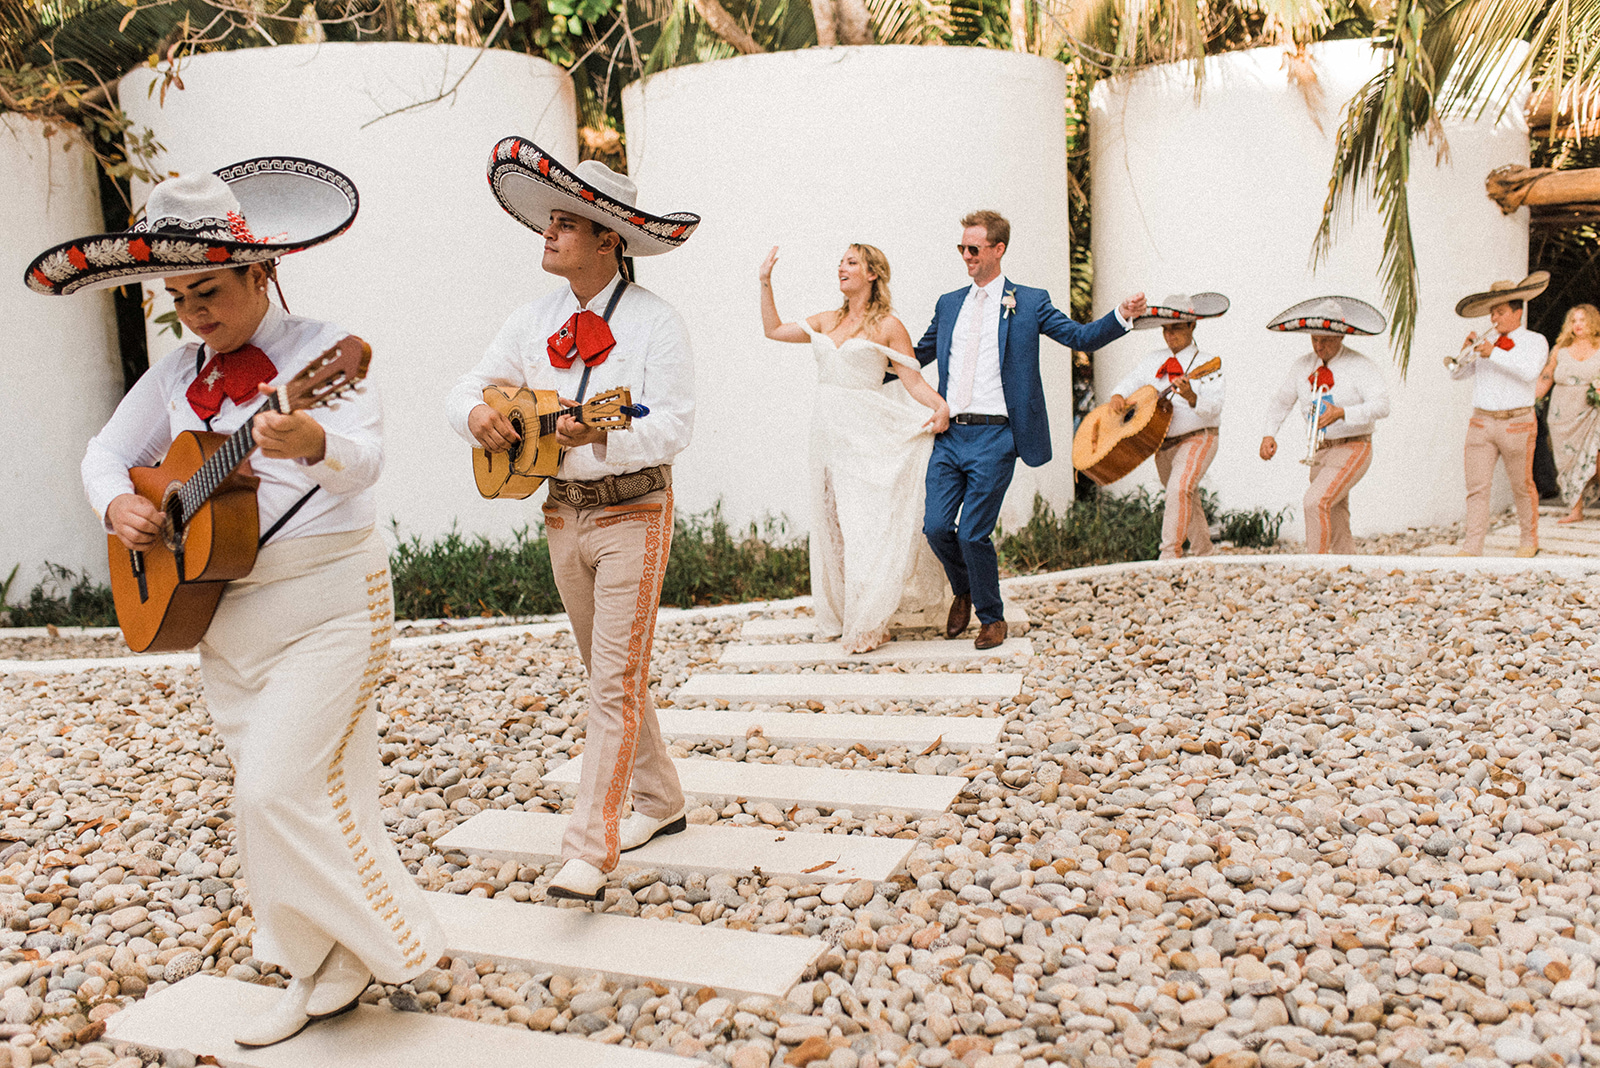 Rancho-Huracan-Wedding-Sayulita-Photographer-149_websize.jpg